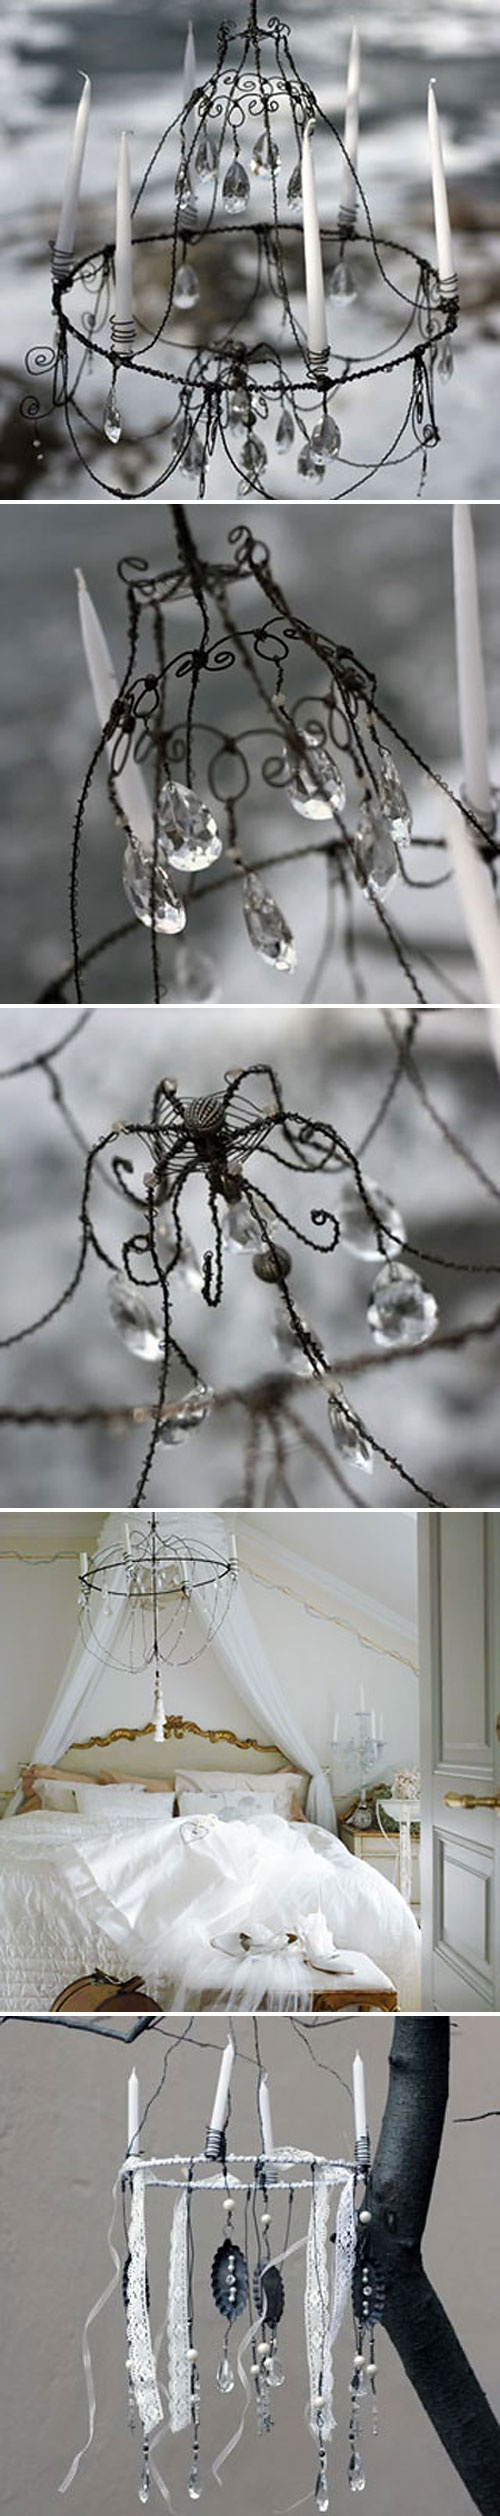 892 best wire art II images on Pinterest   Wire crafts, Wire art and ...